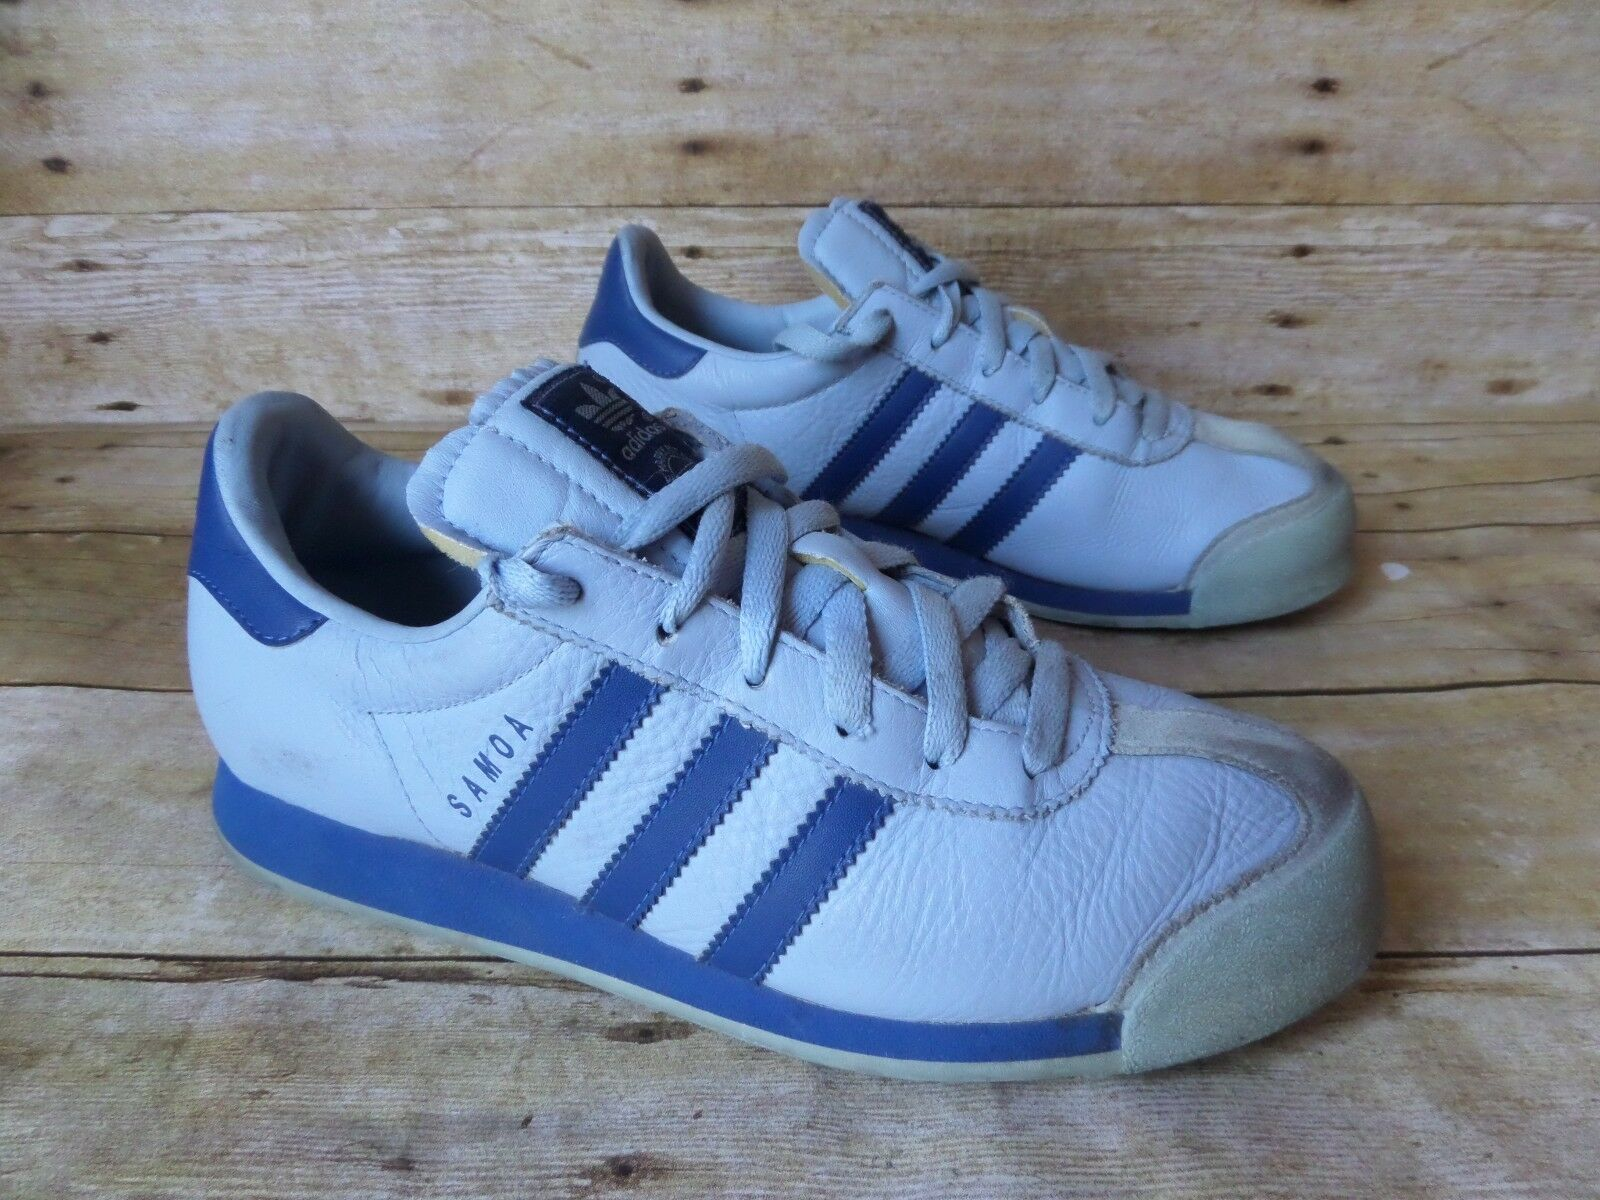 ADIDAS Originals SAMOA Blue Leather Lace Up Athletic Shoes Men's 7.5 The latest discount shoes for men and women